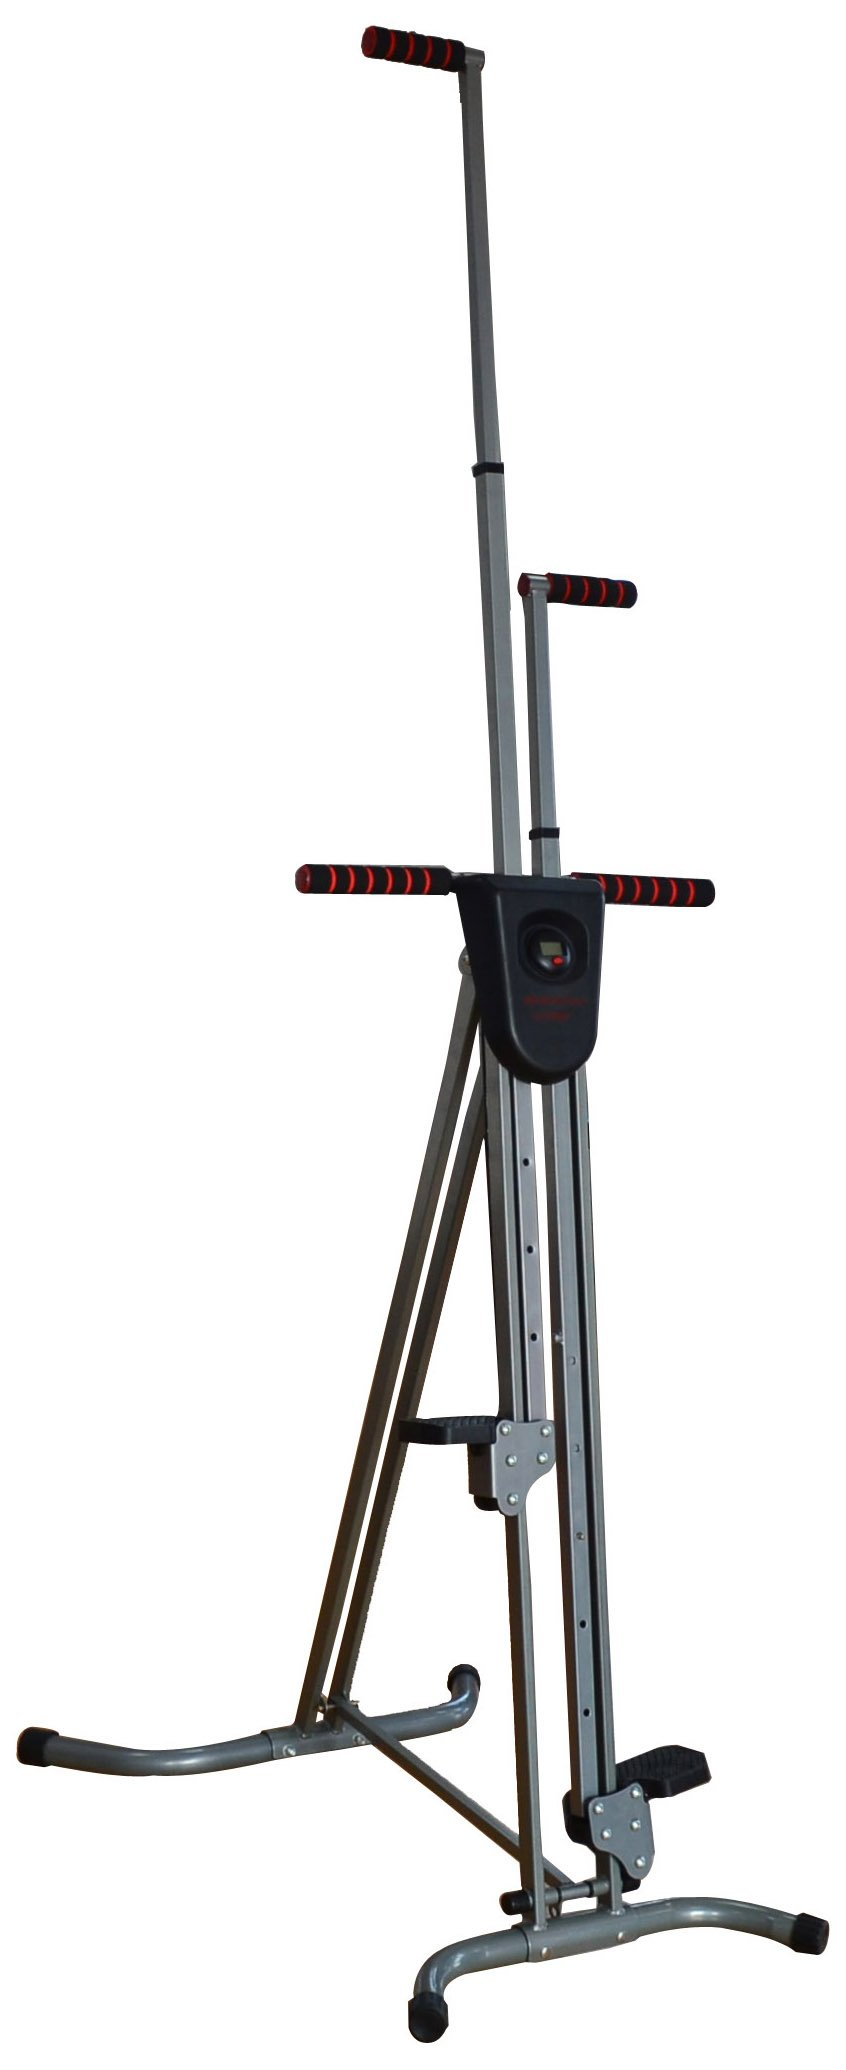 BalanceFrom Vertical Climber with Cast Iron Frame and Digital Display [Newest Version] by BalanceFrom (Image #3)